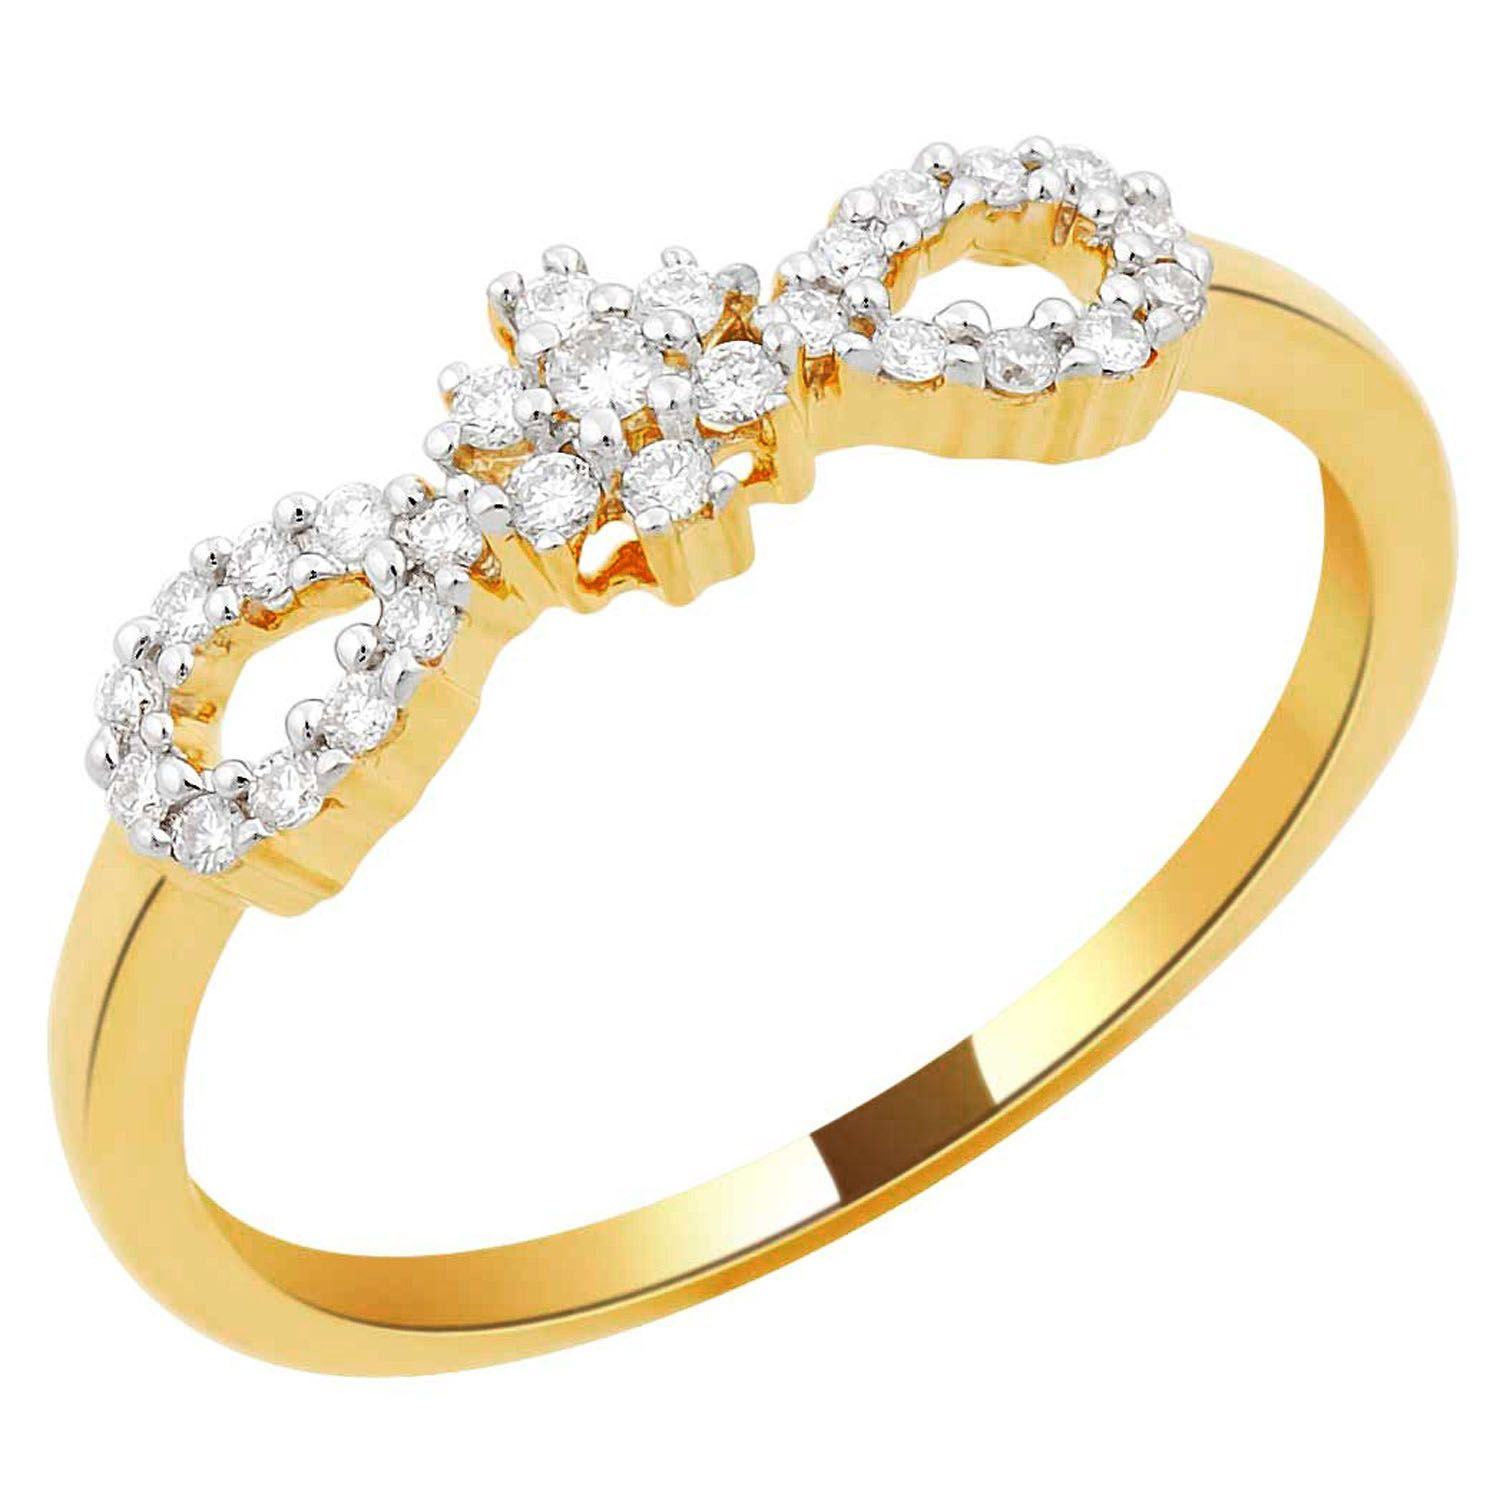 ladies rings | damas Diamond Ladies Ring - DDR02570_View_1/jewellery-coins/gold/d ...